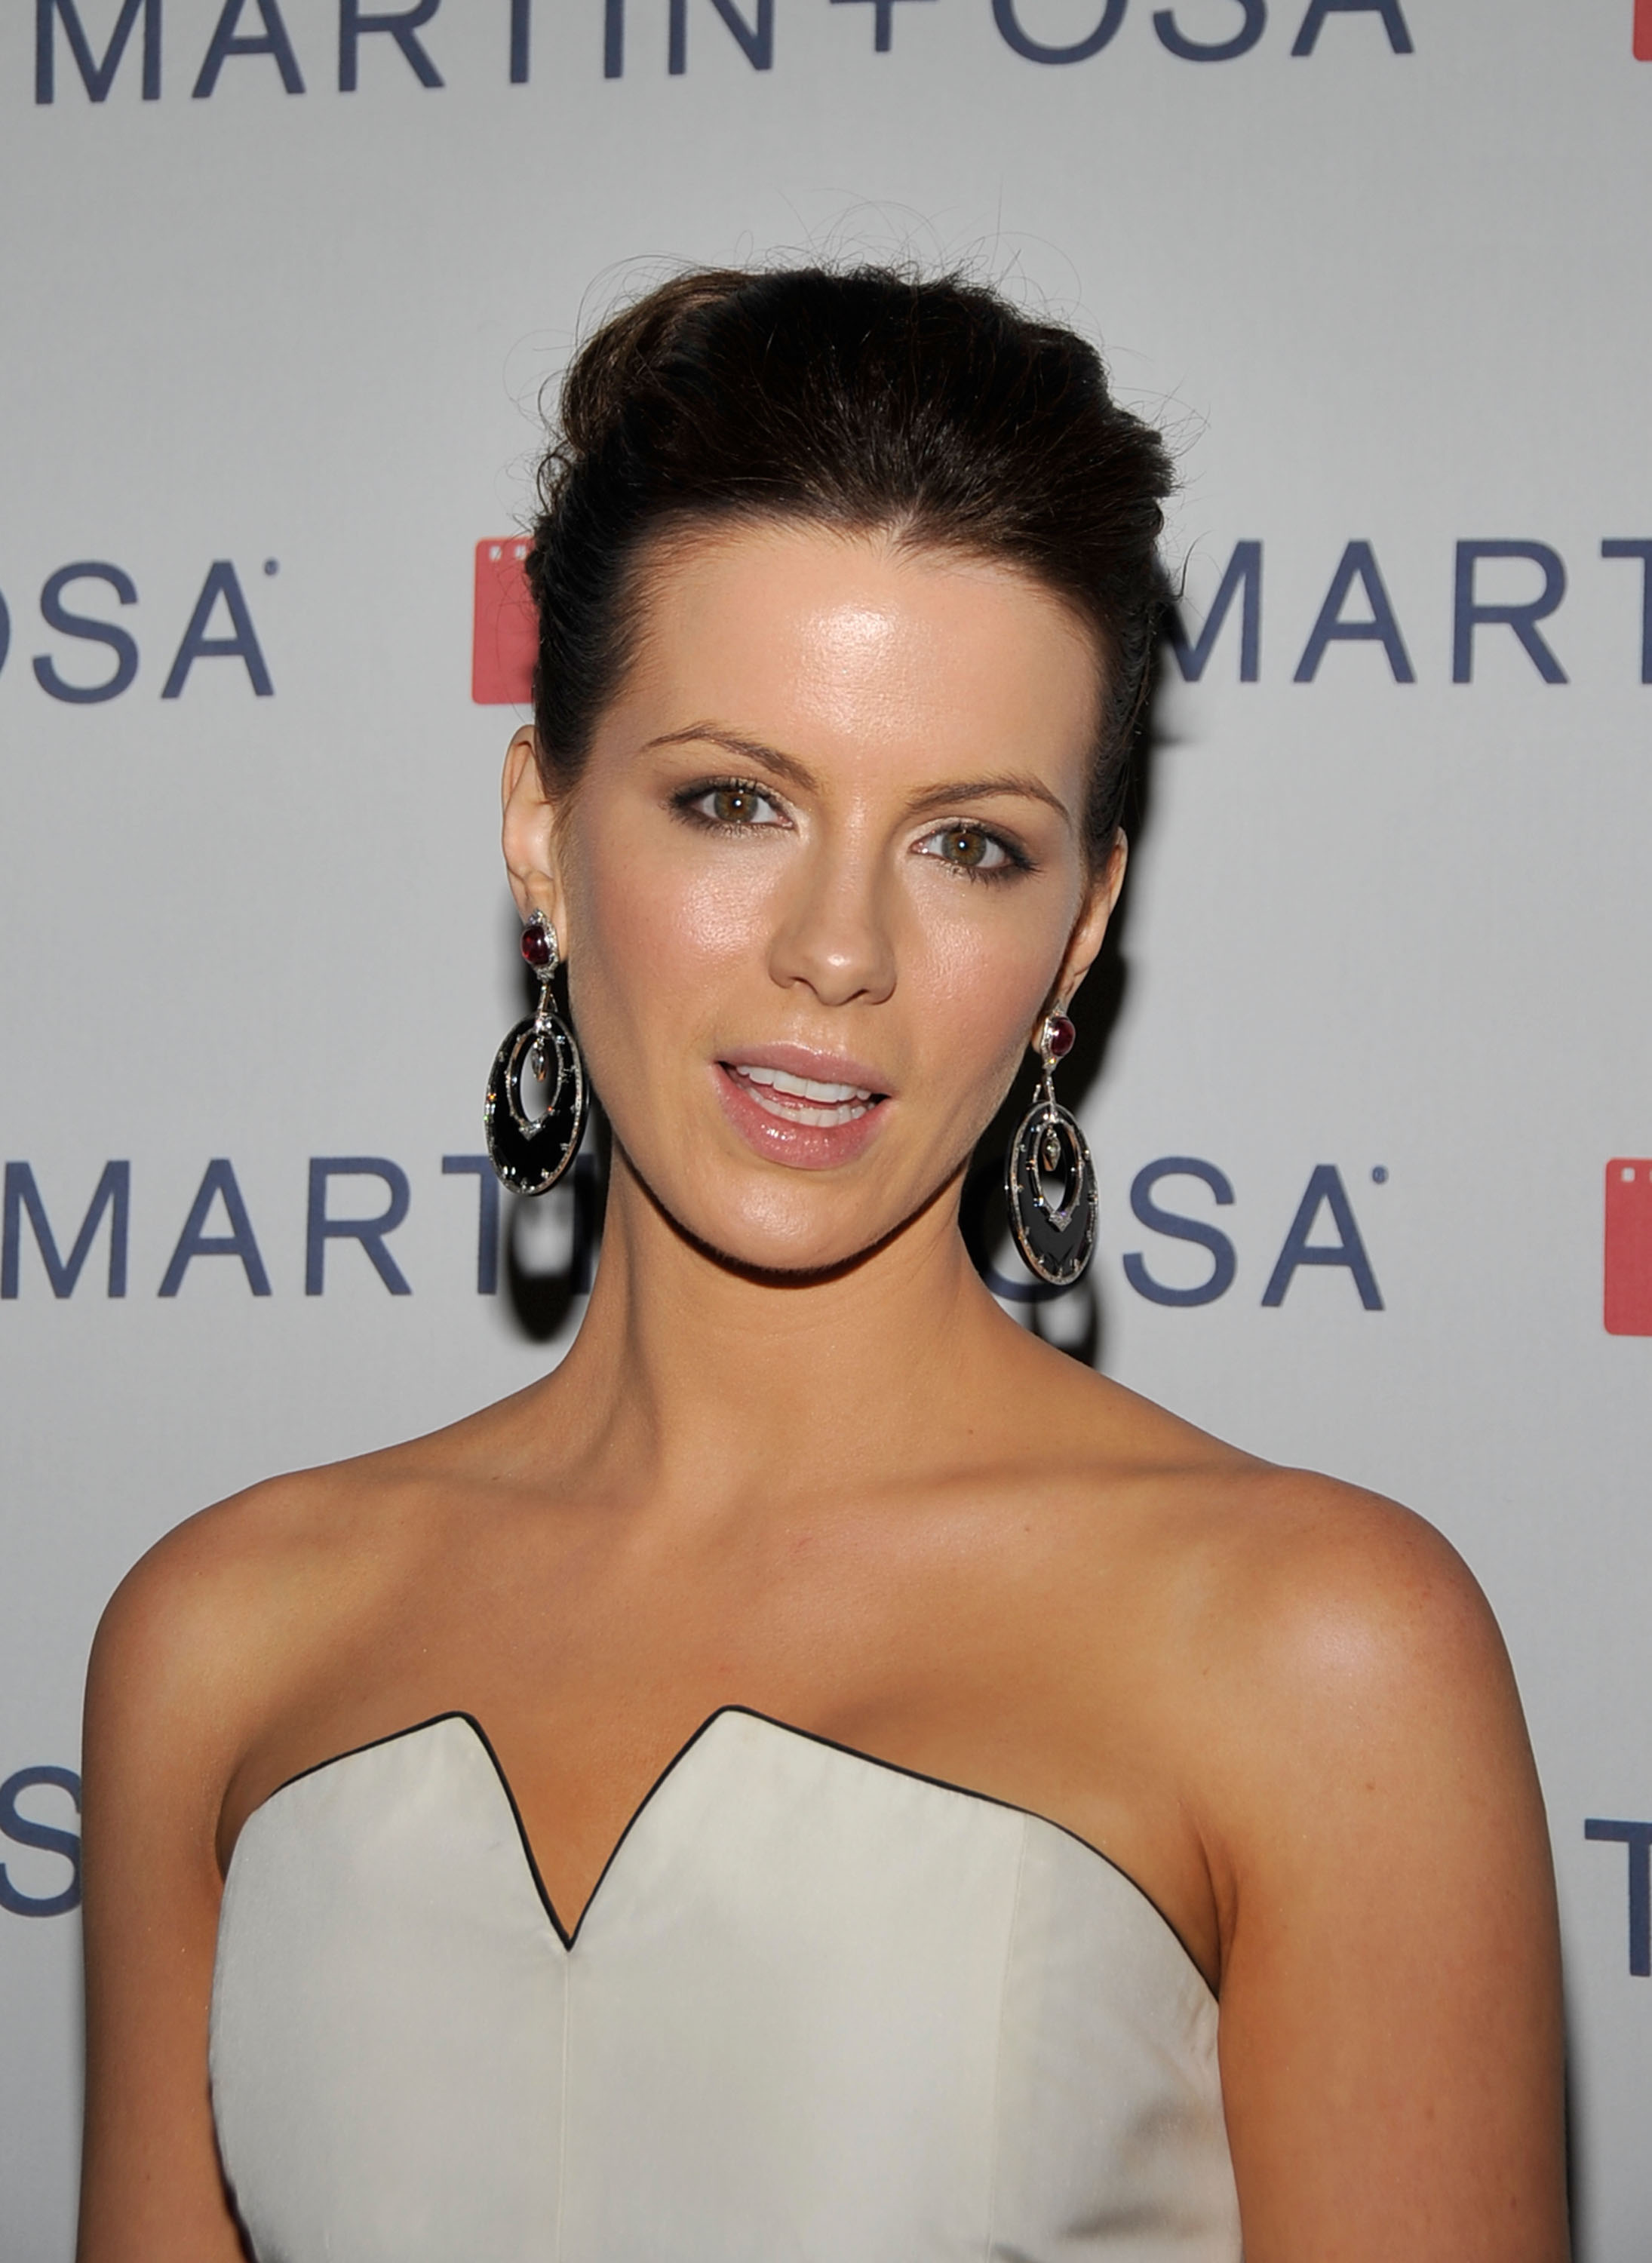 08649_Celebutopia-Kate_Beckinsale-Martin_3_Osa43s_Screening_Of_All_About_Eve_in_Hollywood-08_122_1189lo.jpg